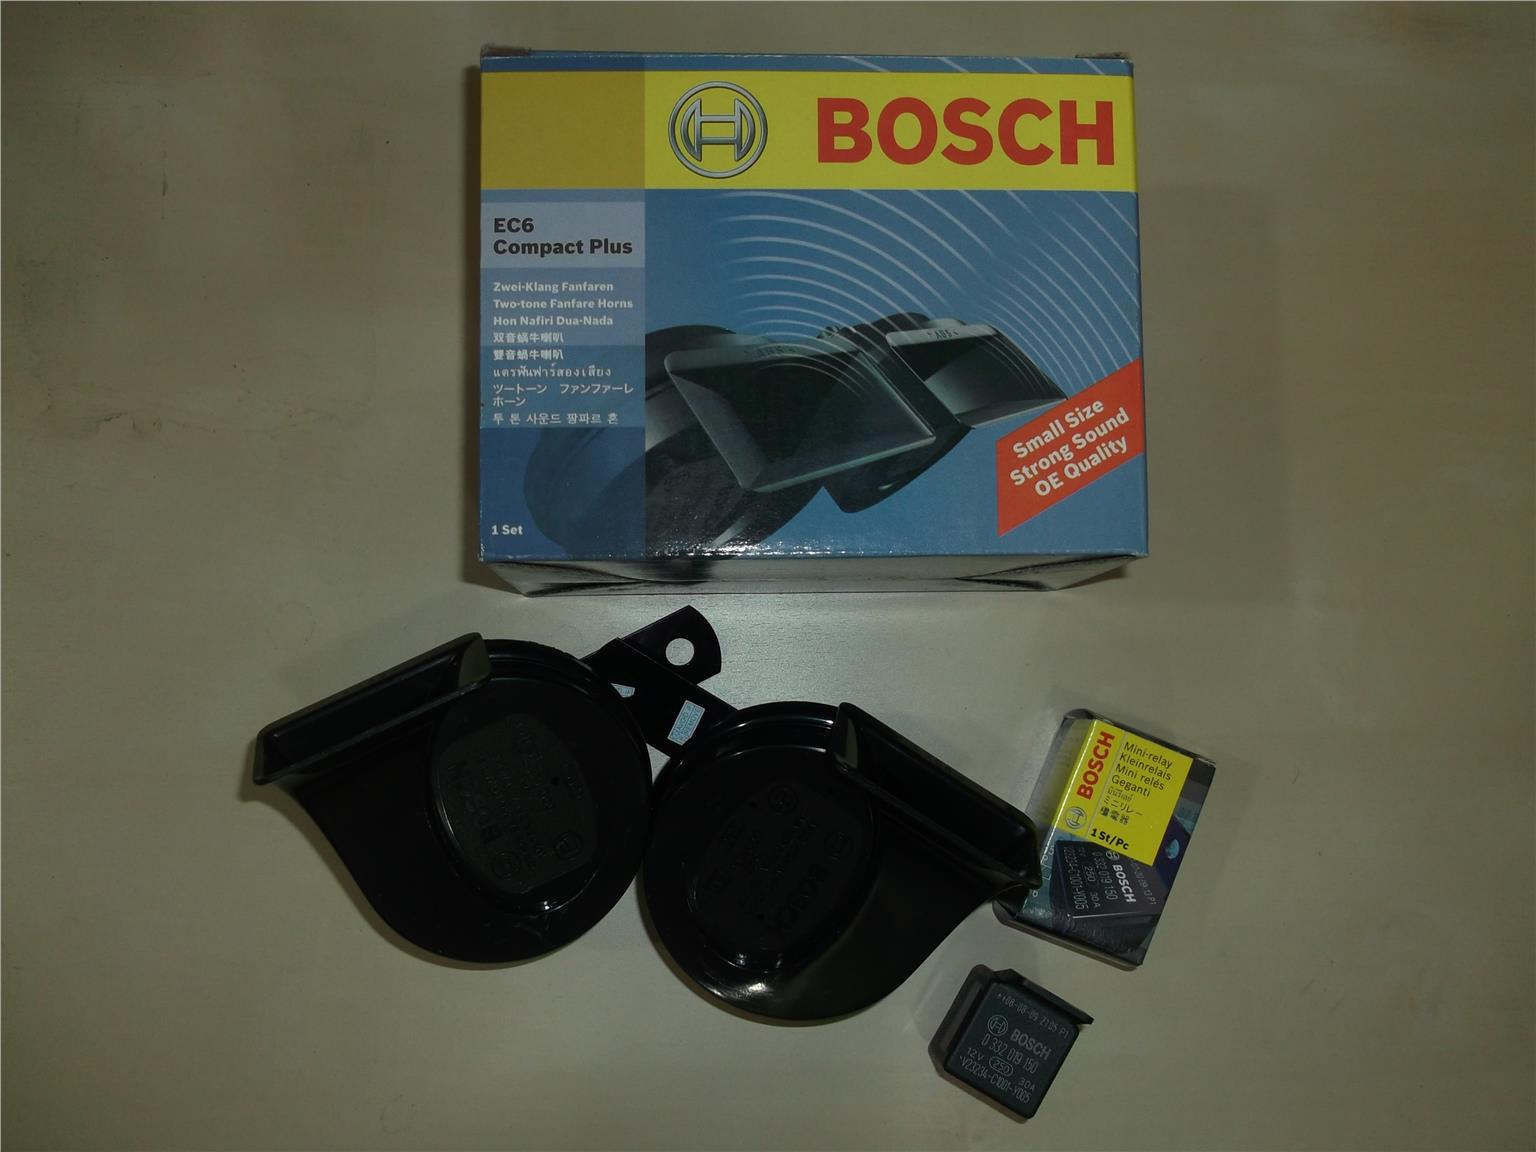 BOSCH EC6 BM TWIN TONE HORN (MADE IN TURKEY) FREE BOSCH RELAY